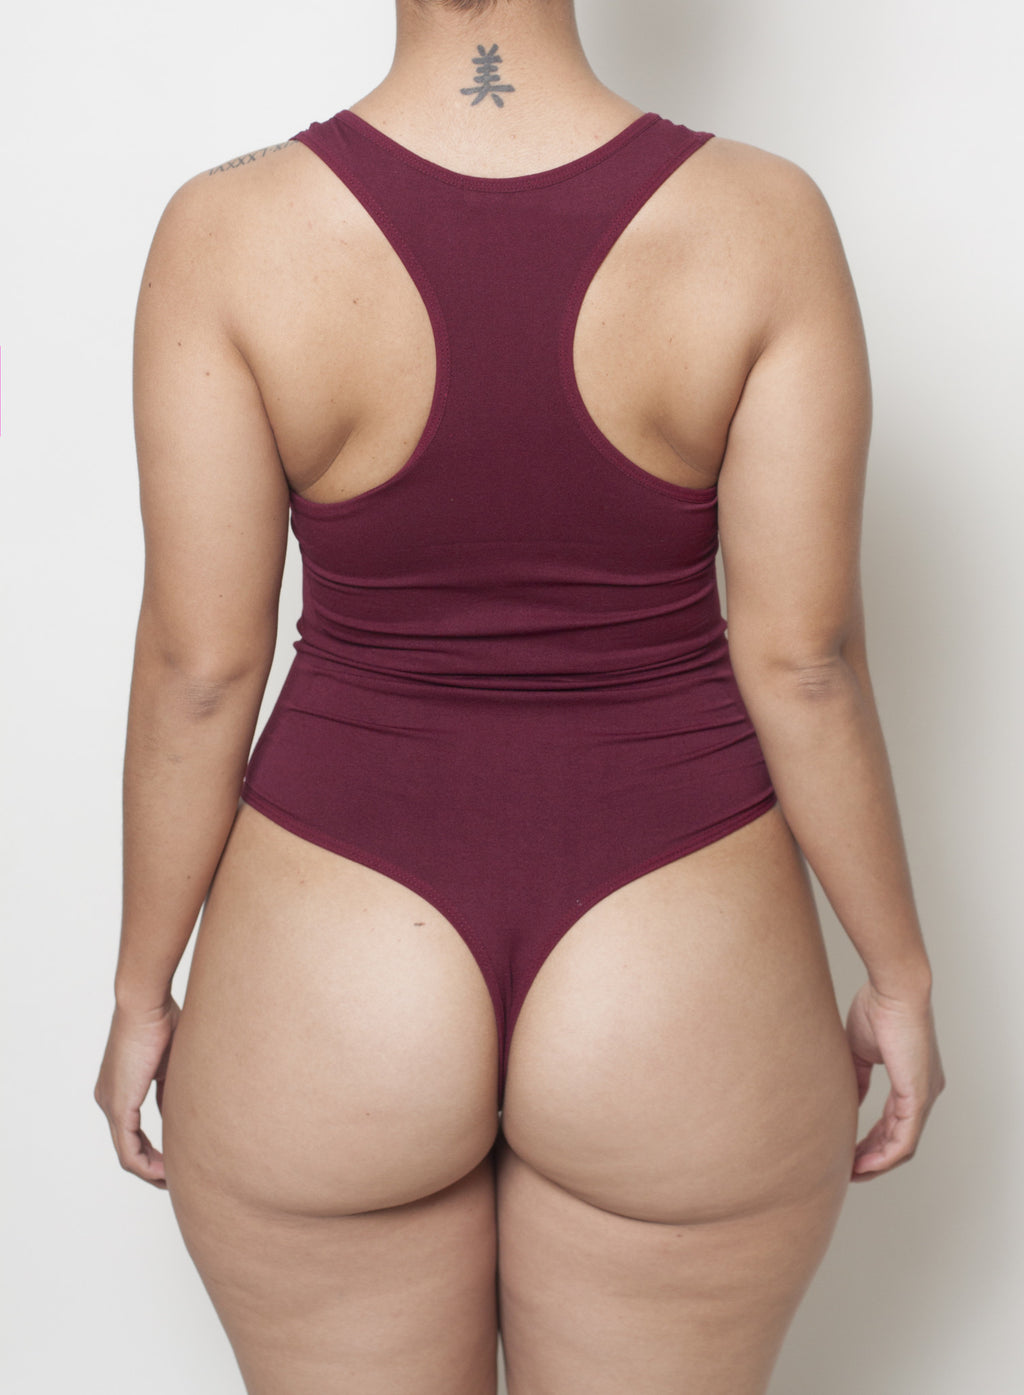 Burgundy Body By Babes Thong Bodysuit w/ Tummy Control fits up to plus - Babes And Felines | Specializing in Fashionable Staple Pieces for Every Shape and Size